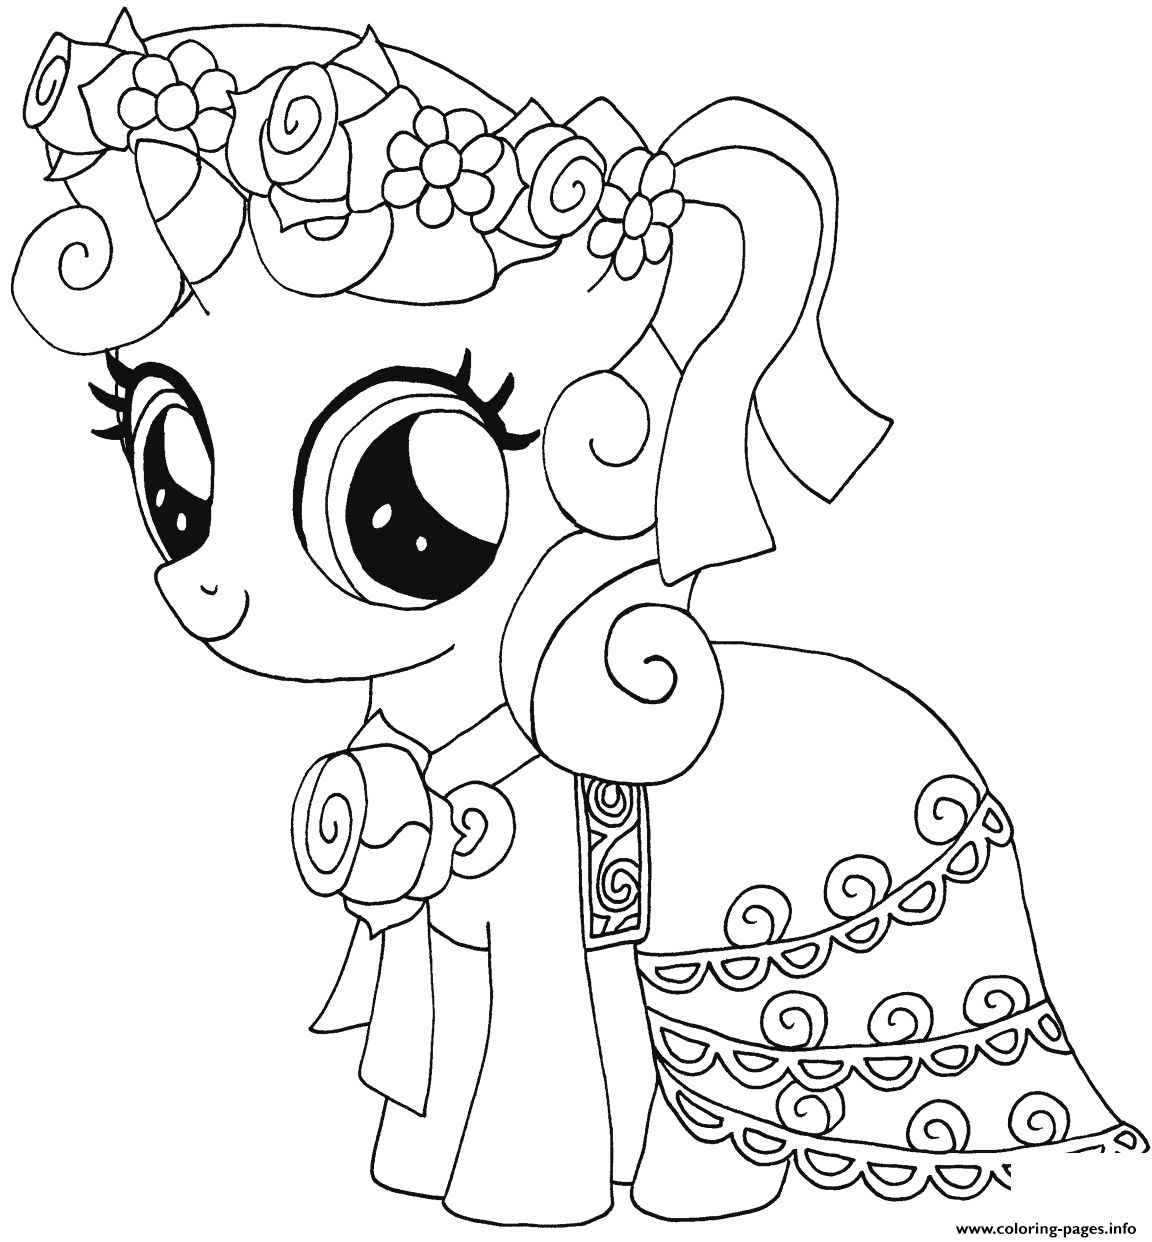 my little pony sweetie belle sweetie belle coloring game coloring pages allow kids to pony sweetie my belle little